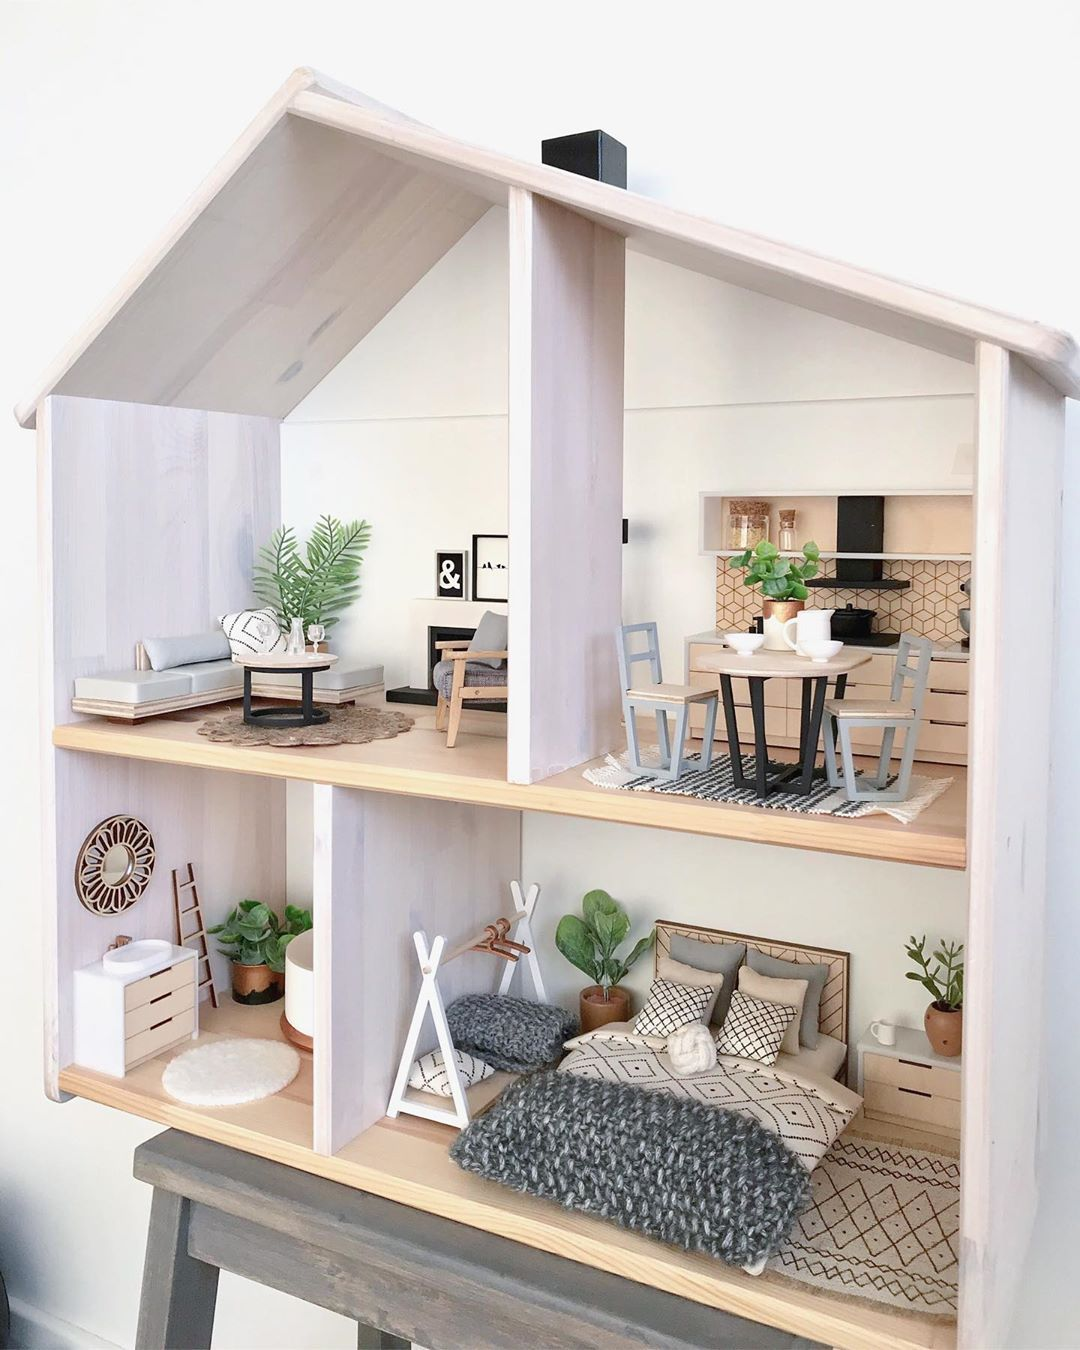 12 Incredibly Tricked Out IKEA Flisat Dollhouses | Hunker